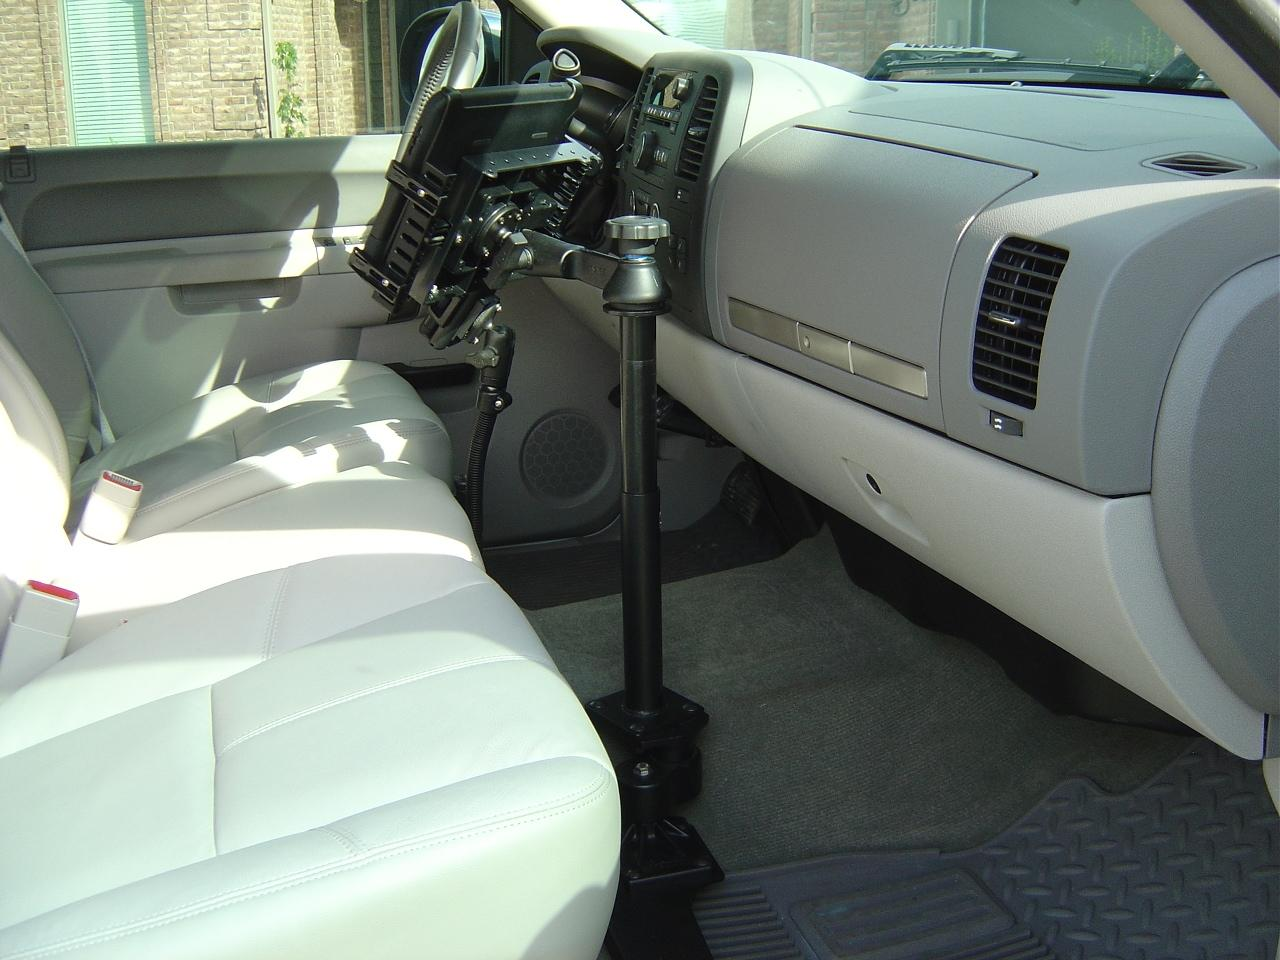 Used Chevy Avalanche >> IPad Mount in 2011 GMC Sierra Gallery Article